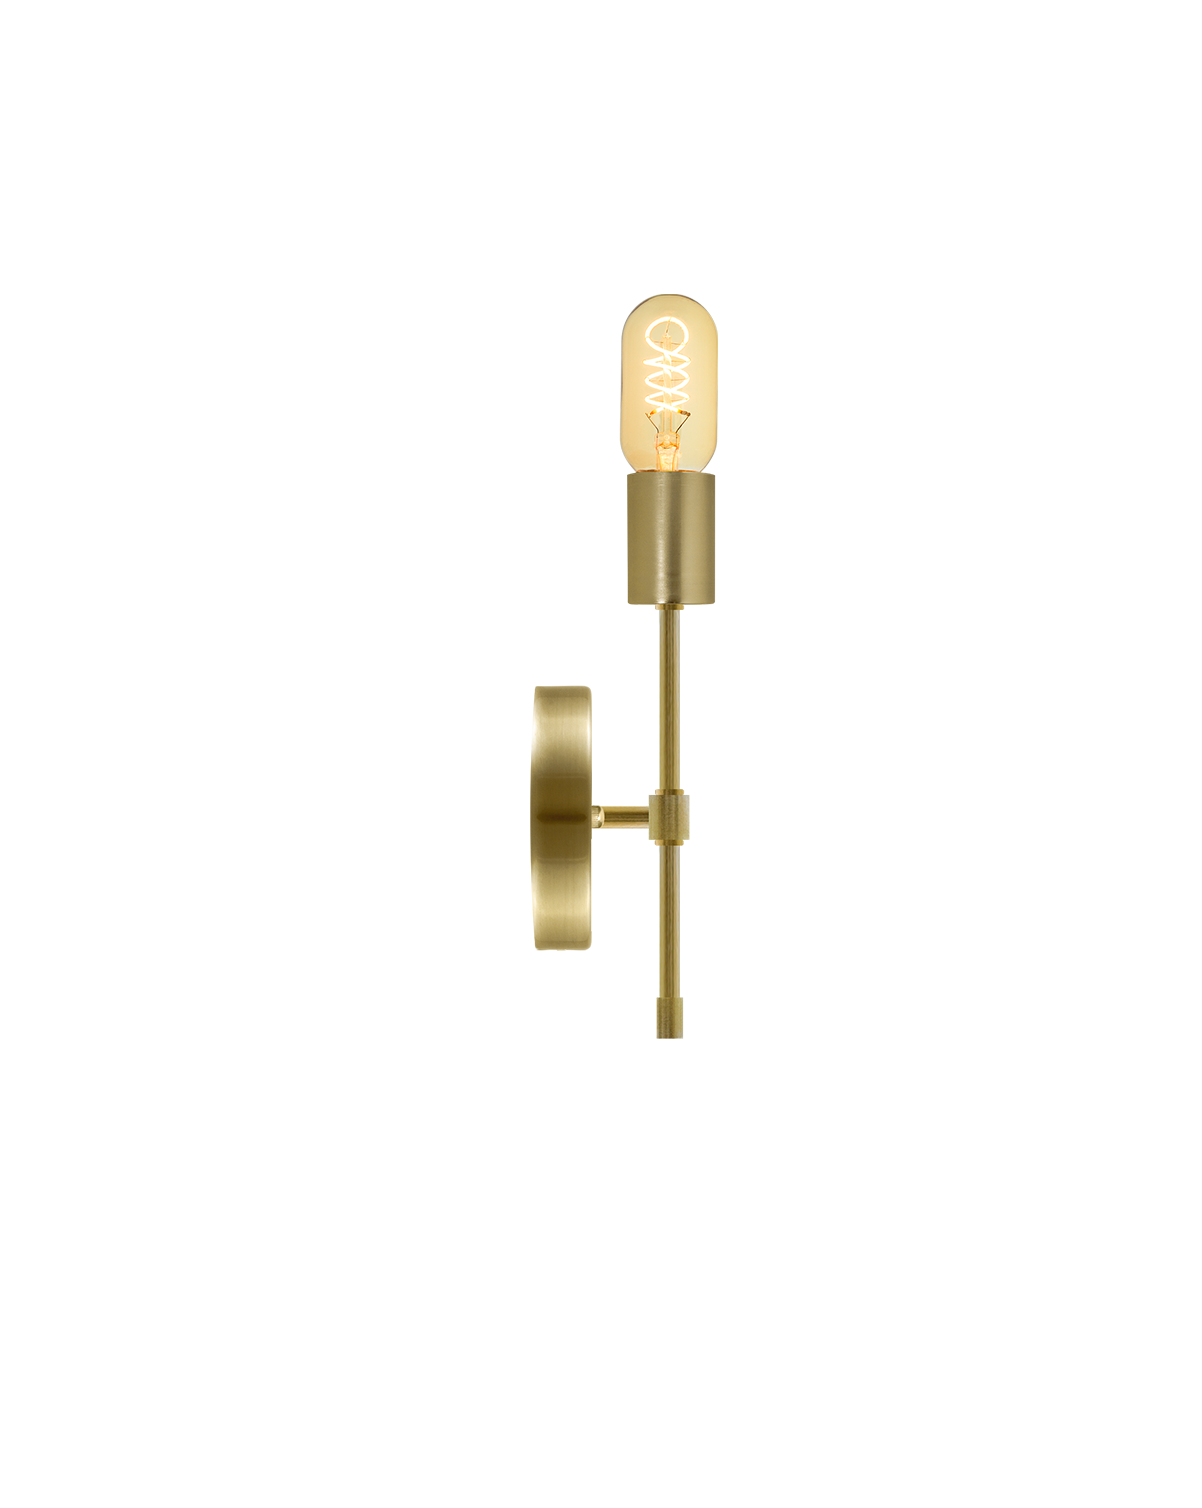 Torch Wall Sconce: Brass Hangout Lighting